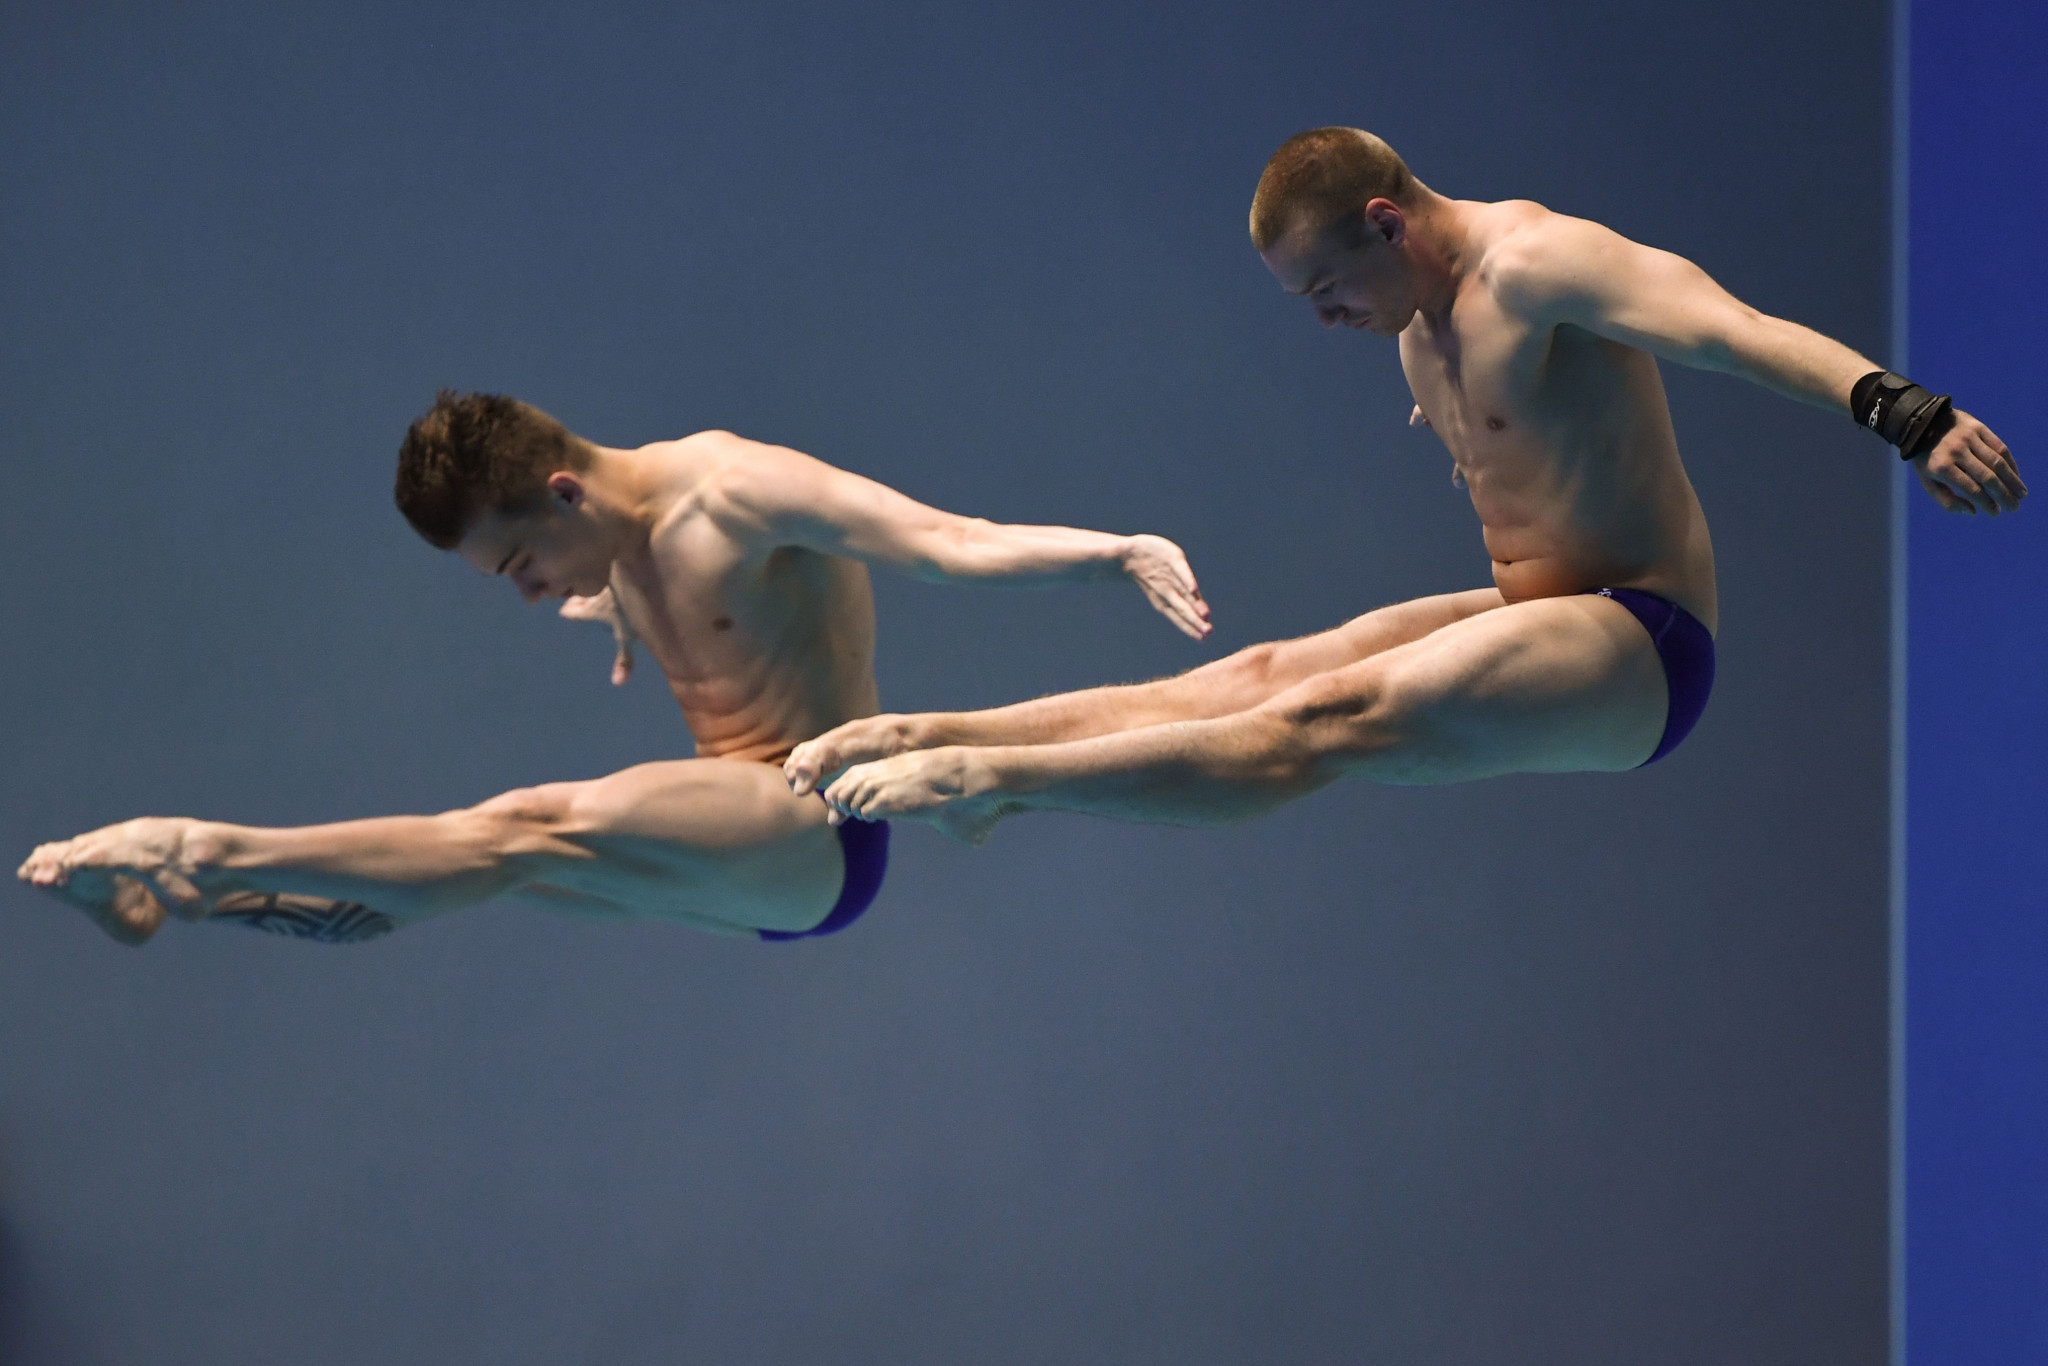 Evgeny Kuznetsov and Nikita Shleikher of Russia produced a commanding display to secure the men's 3m synchro springboard spoils ©Getty Images